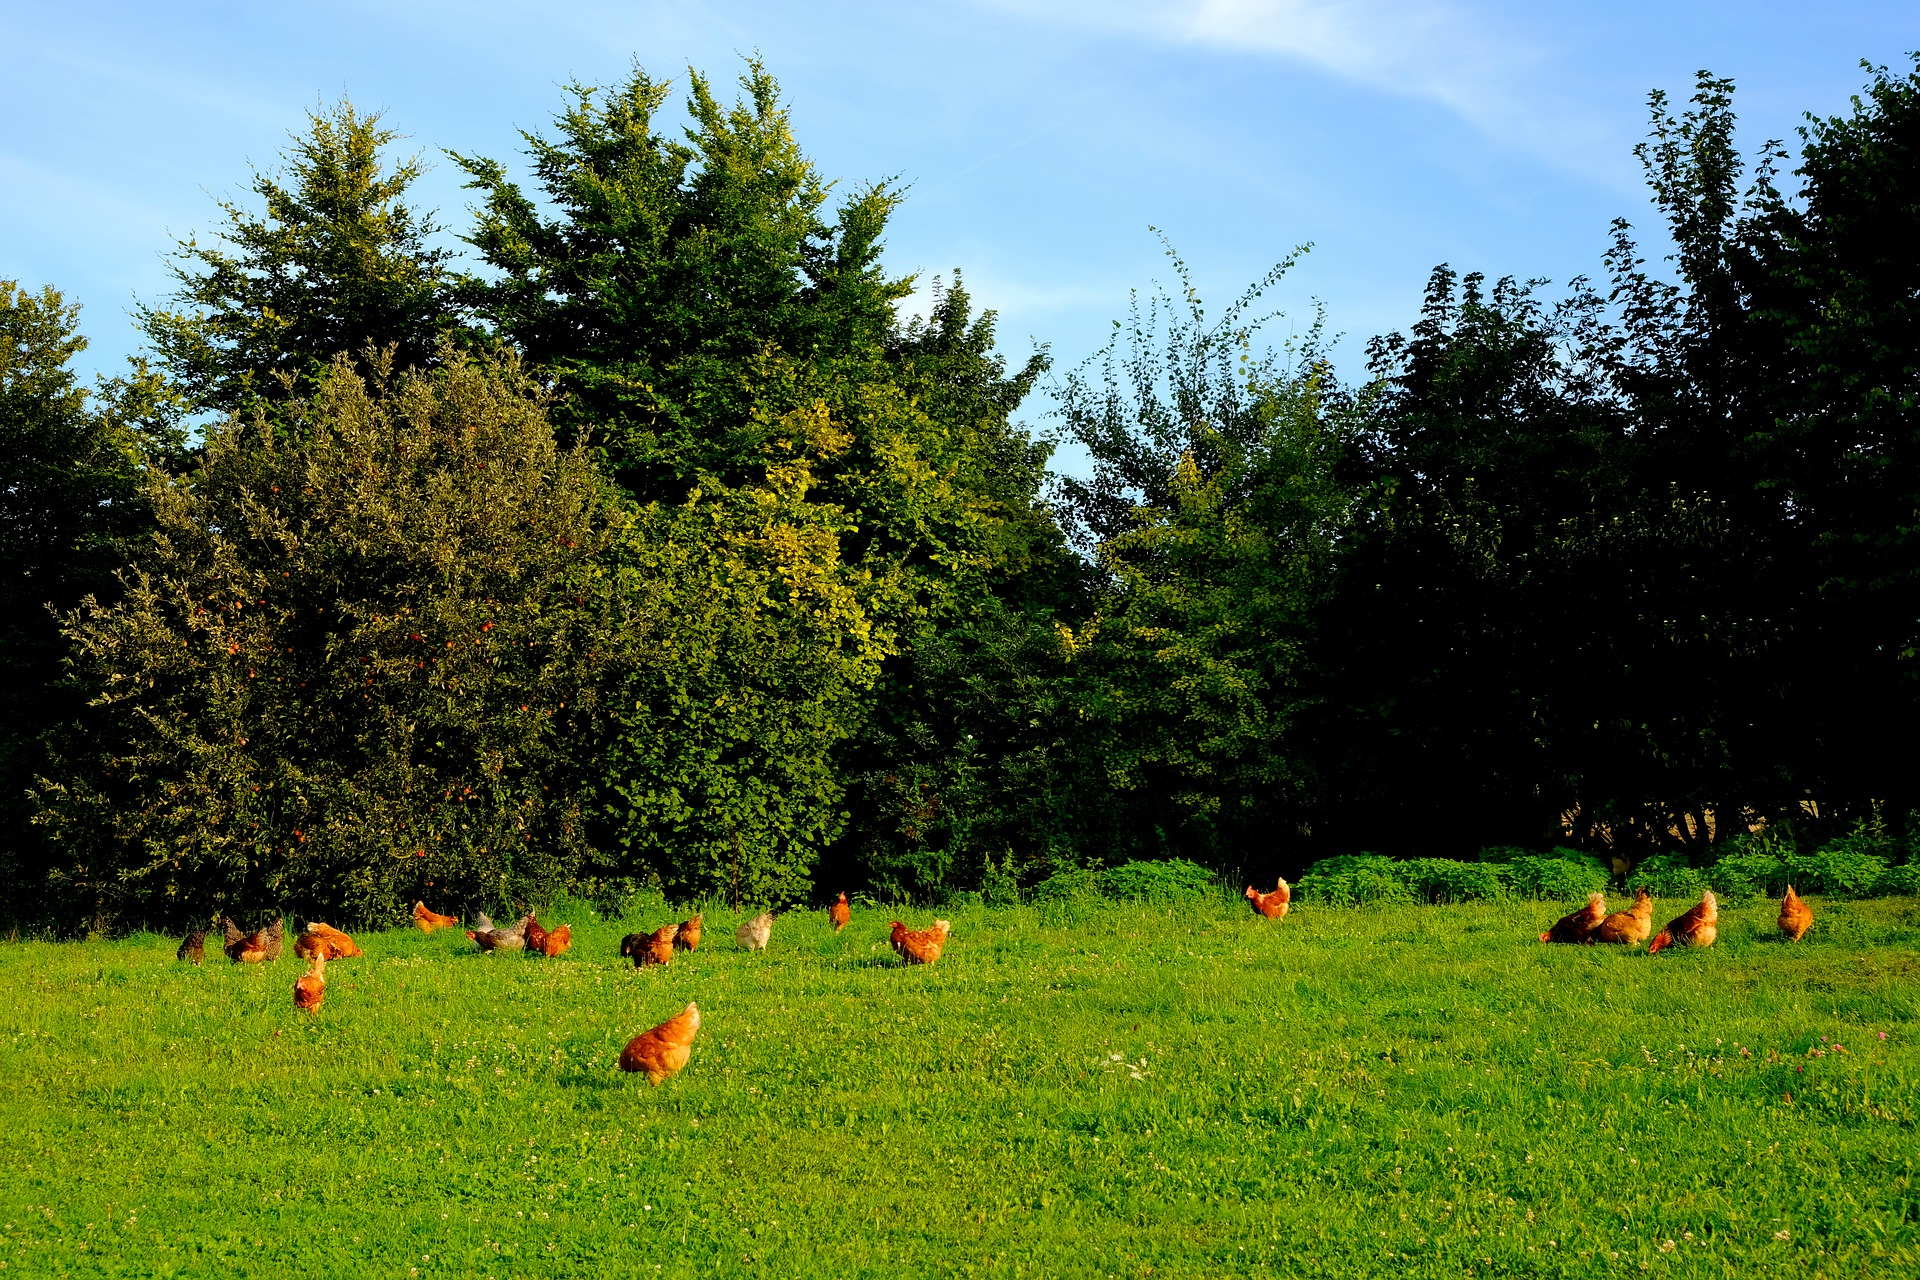 Brown chicken grazing free in a grass field